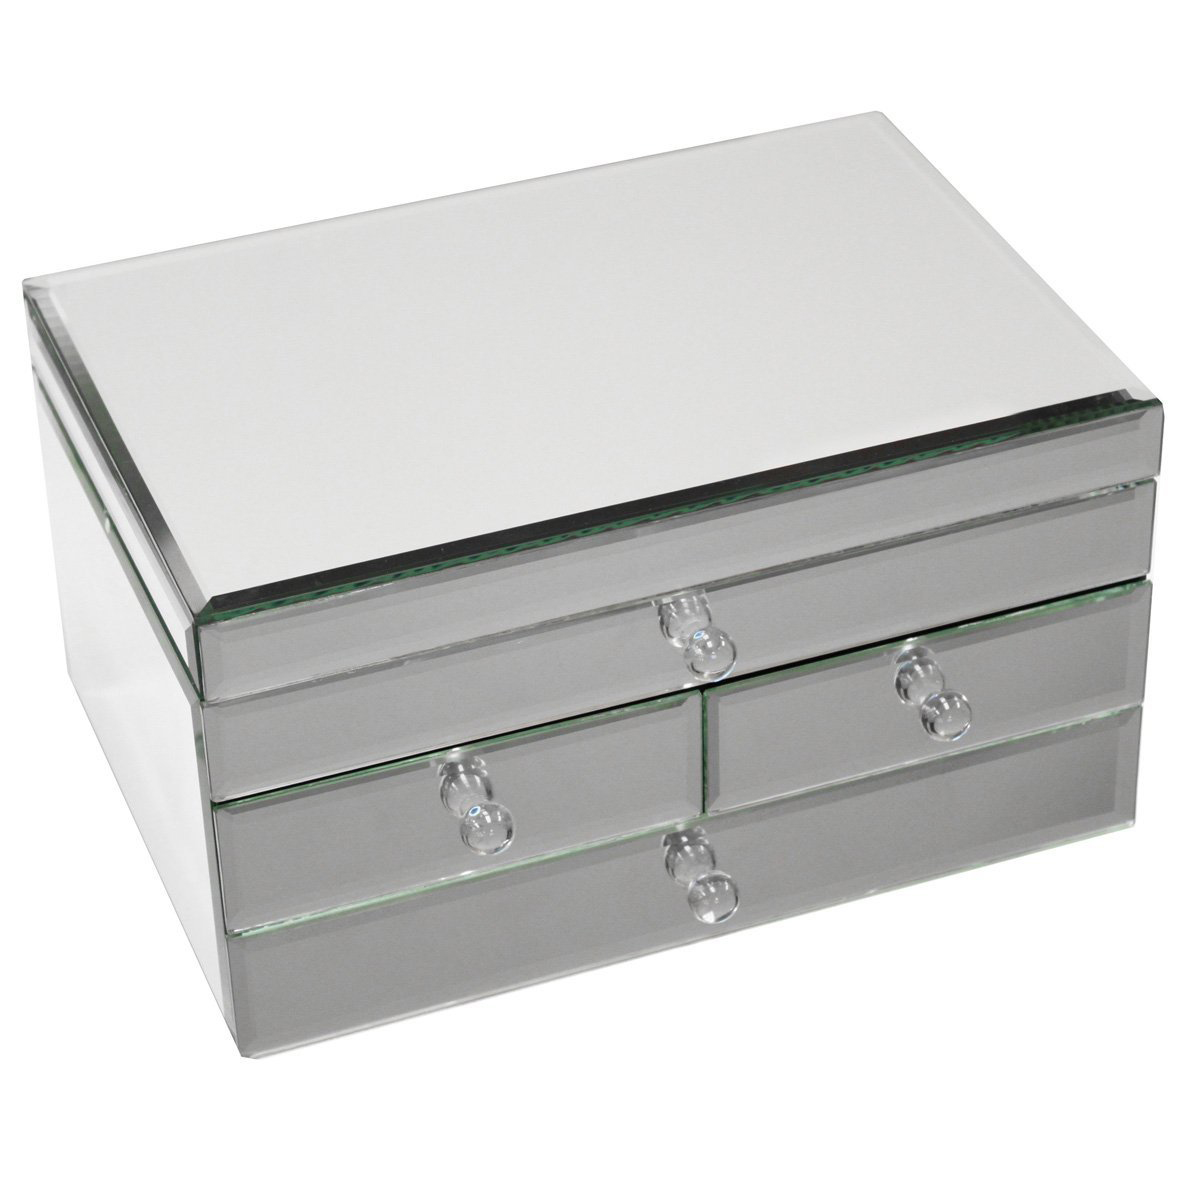 Fullsize Of Mirrored Jewelry Box